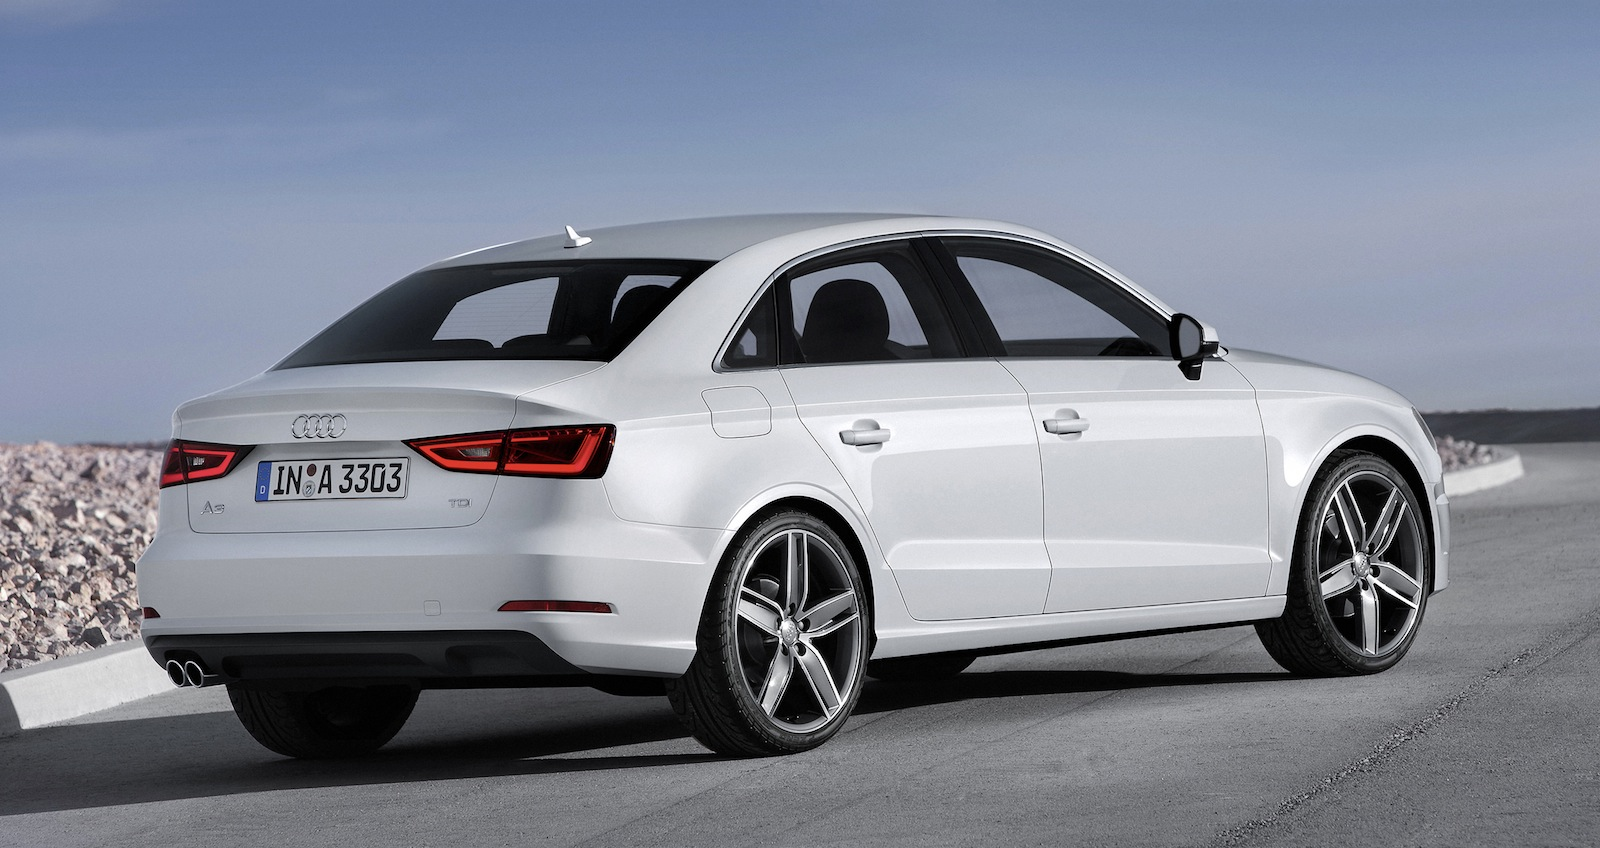 Audi A3 Pictures Information And Specs Diagram Of 1999 A6 Engine Compartment 6